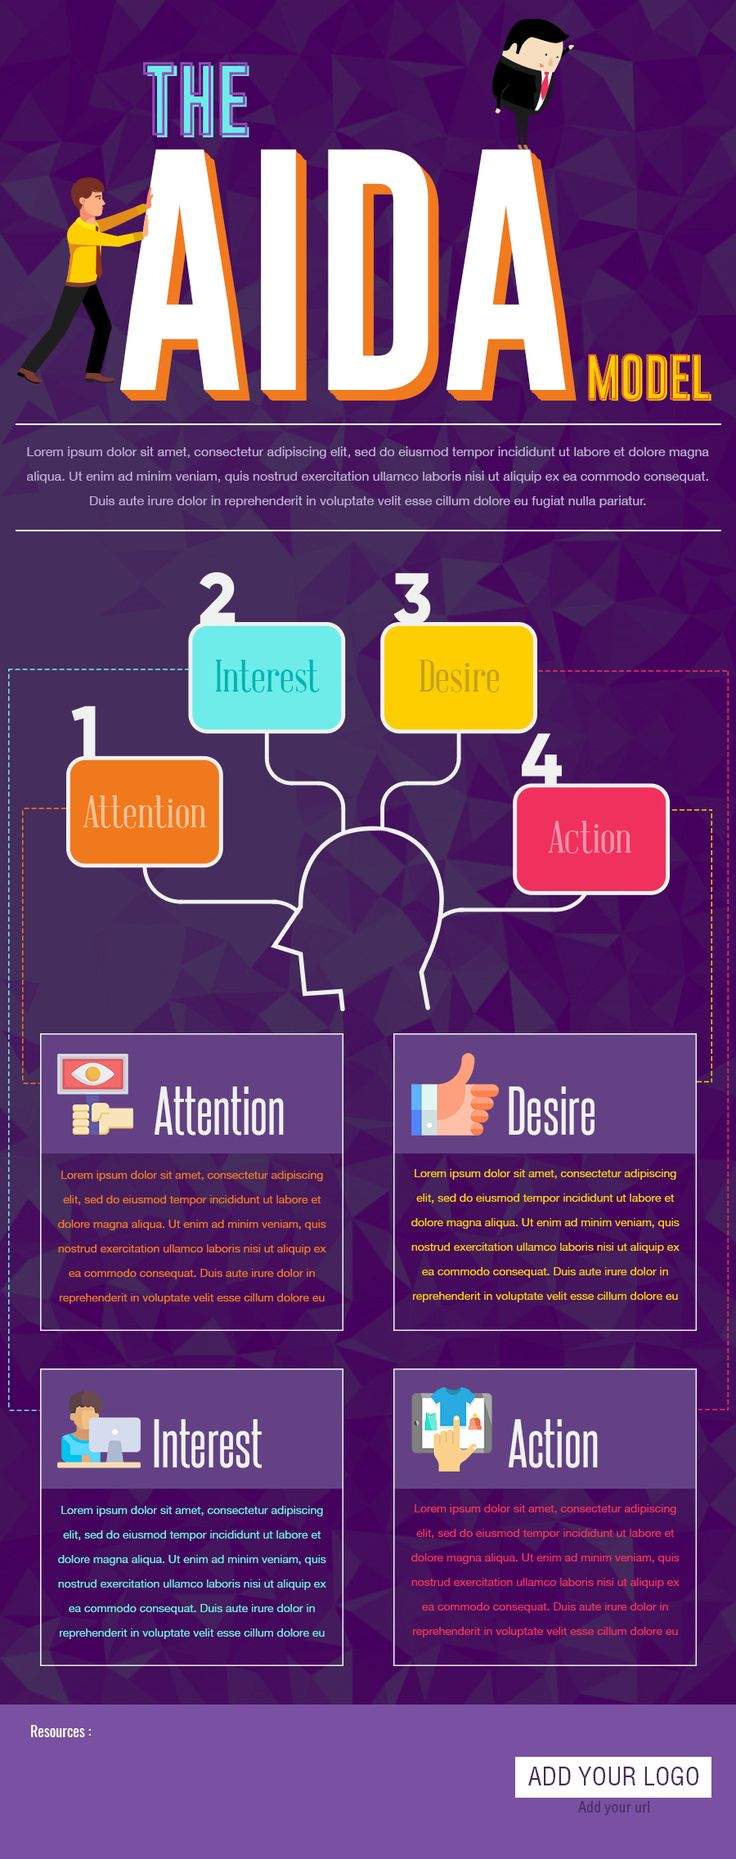 30 best Free Infographic Template images on Pinterest | Plantillas ...